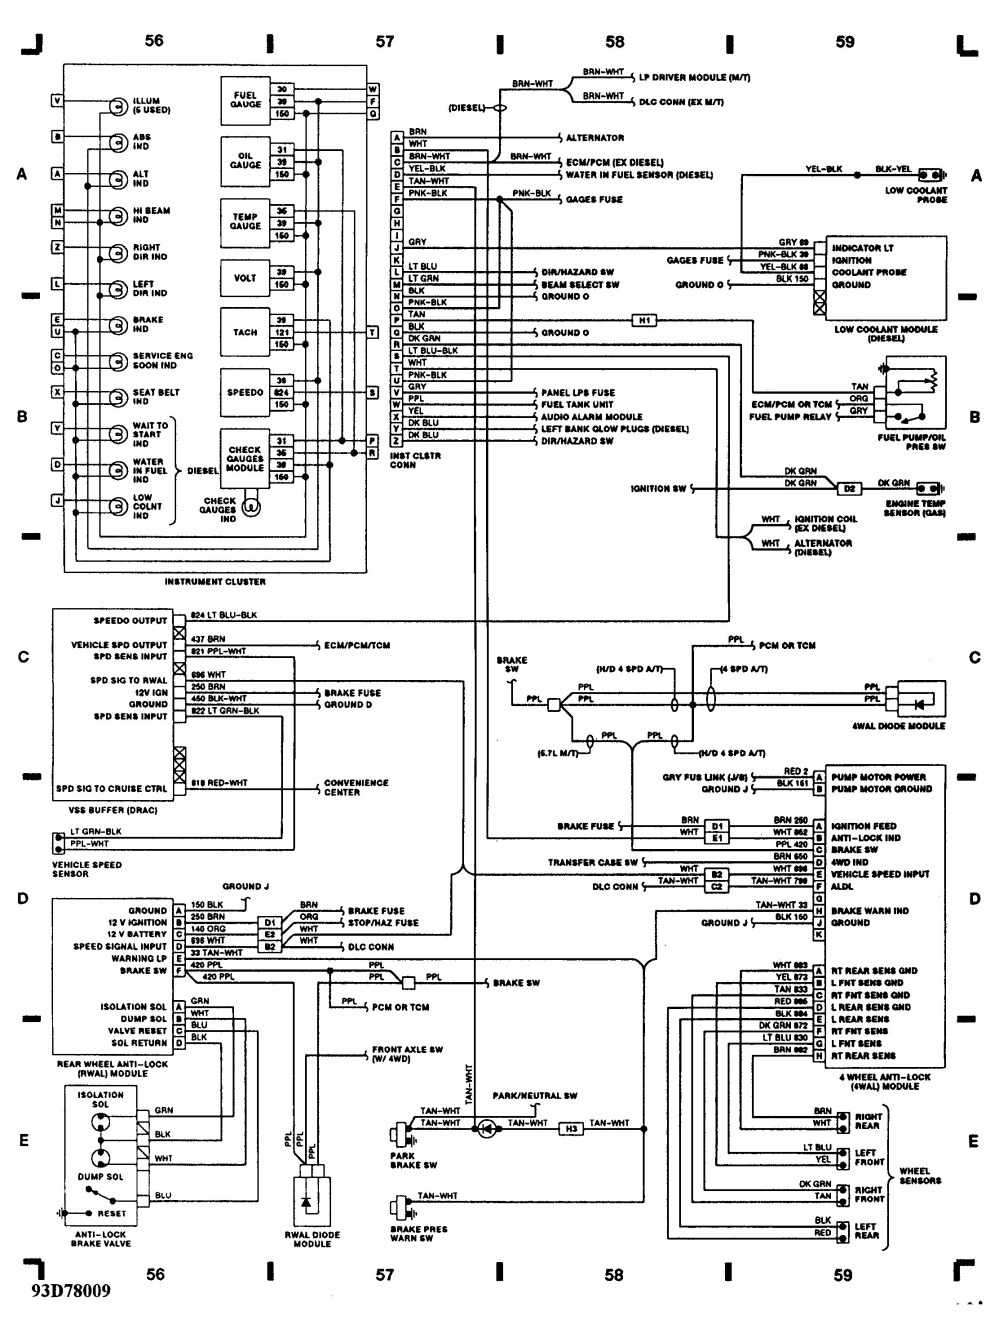 medium resolution of  f150 5 4 engine diagram chevy 5 7 engine diagram wiring diagram schemagm 5 7 engine diagram wiring diagram post chevy